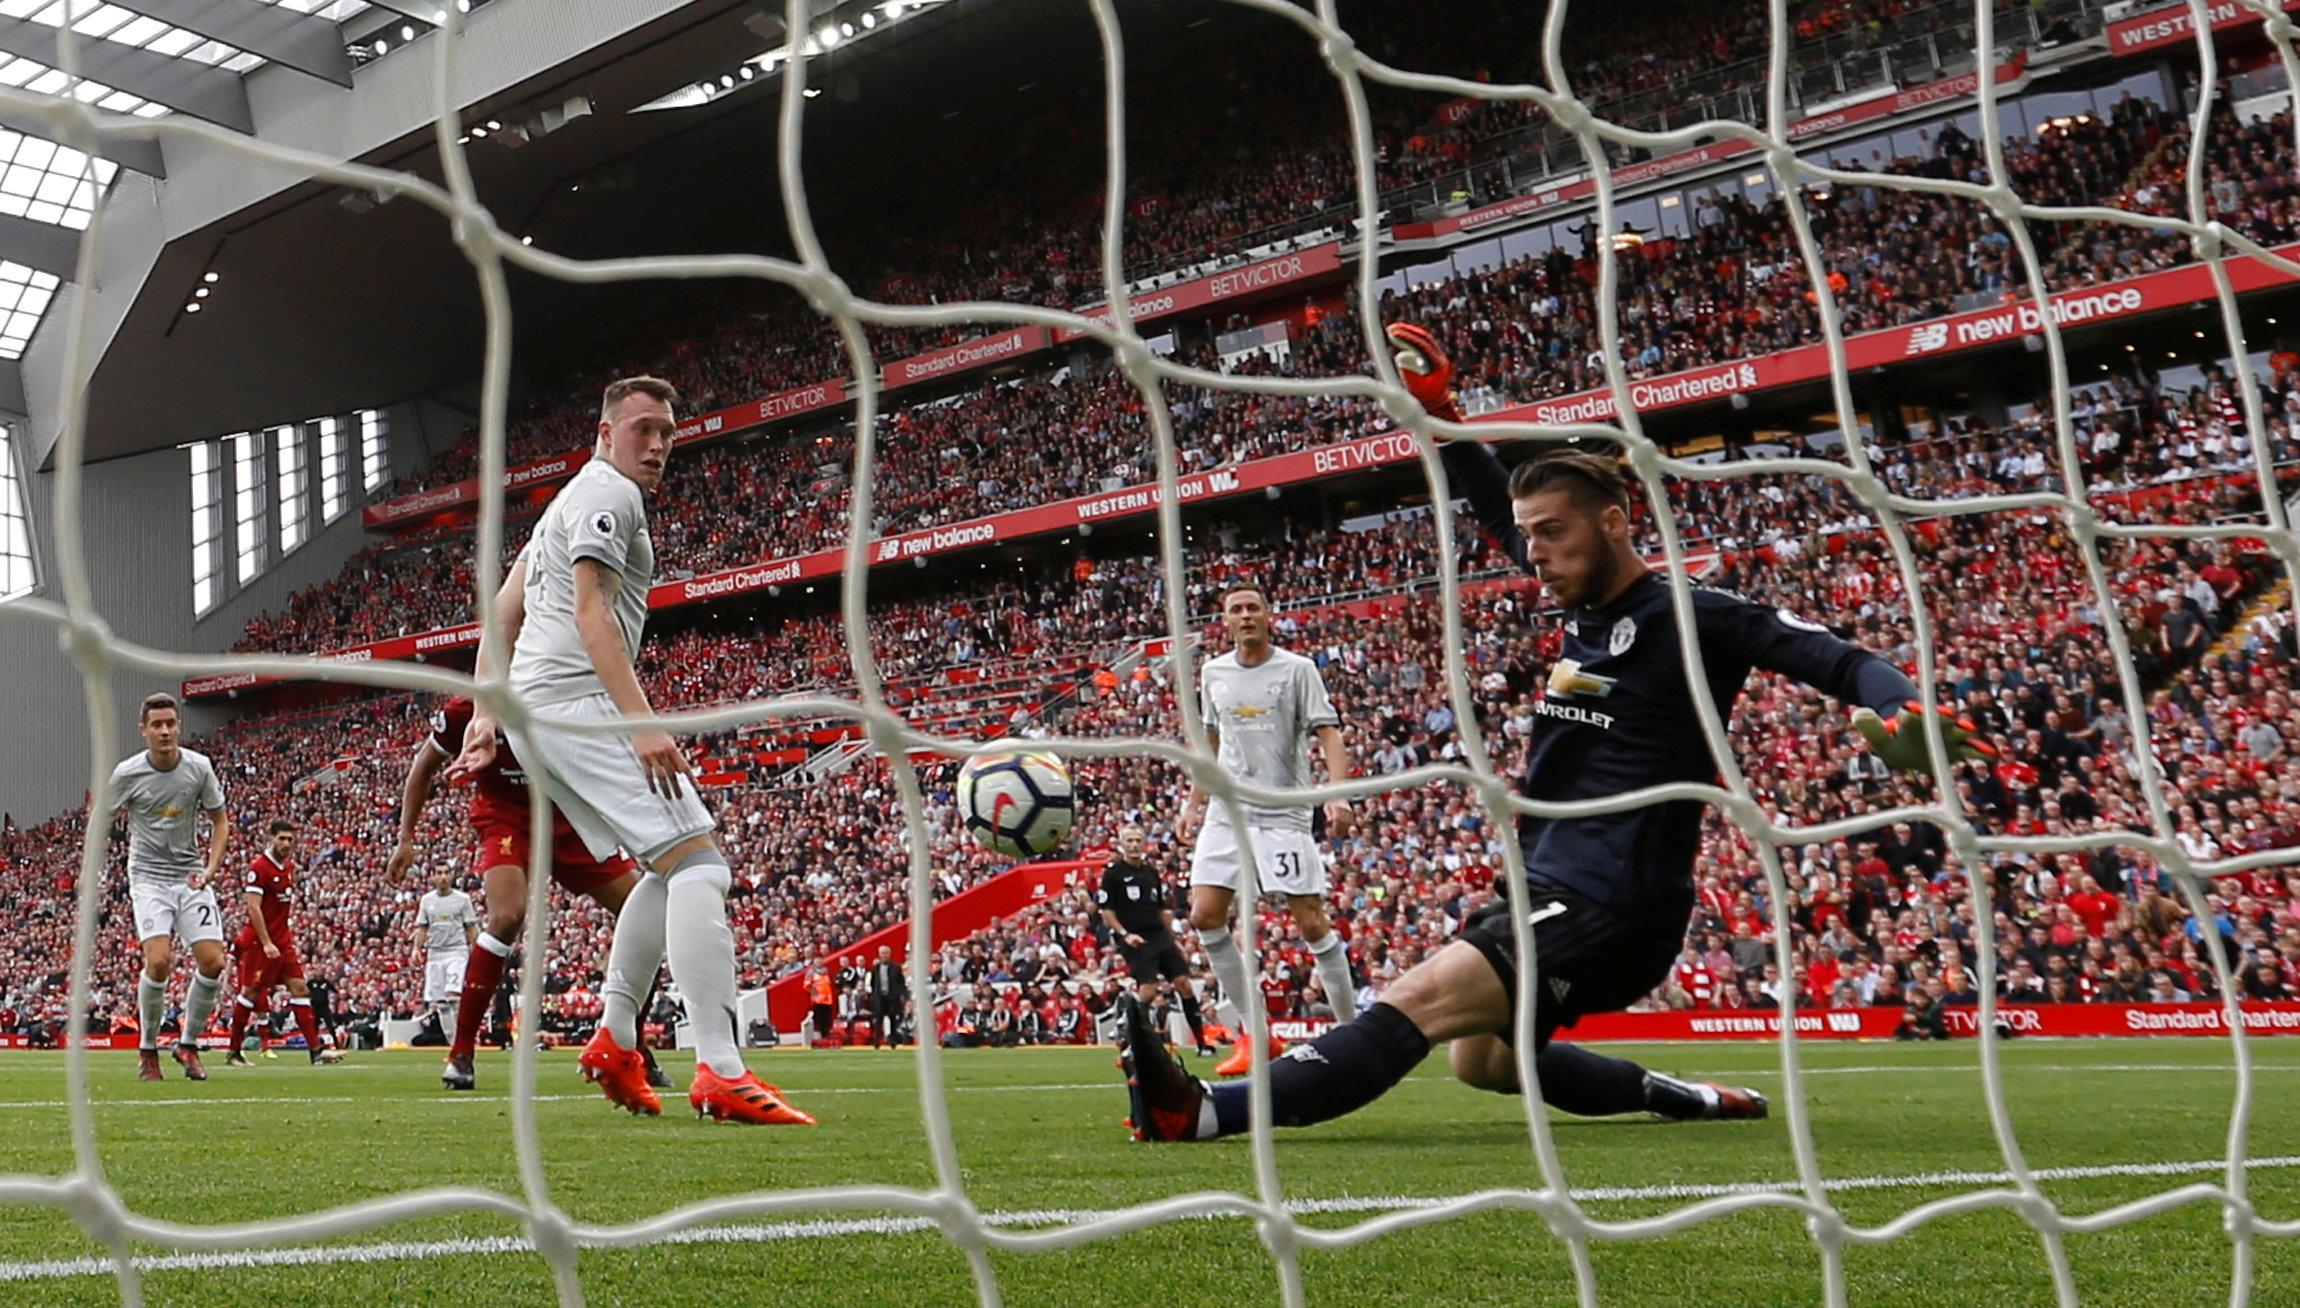 De Gea pulled off a miraculous save from Matip